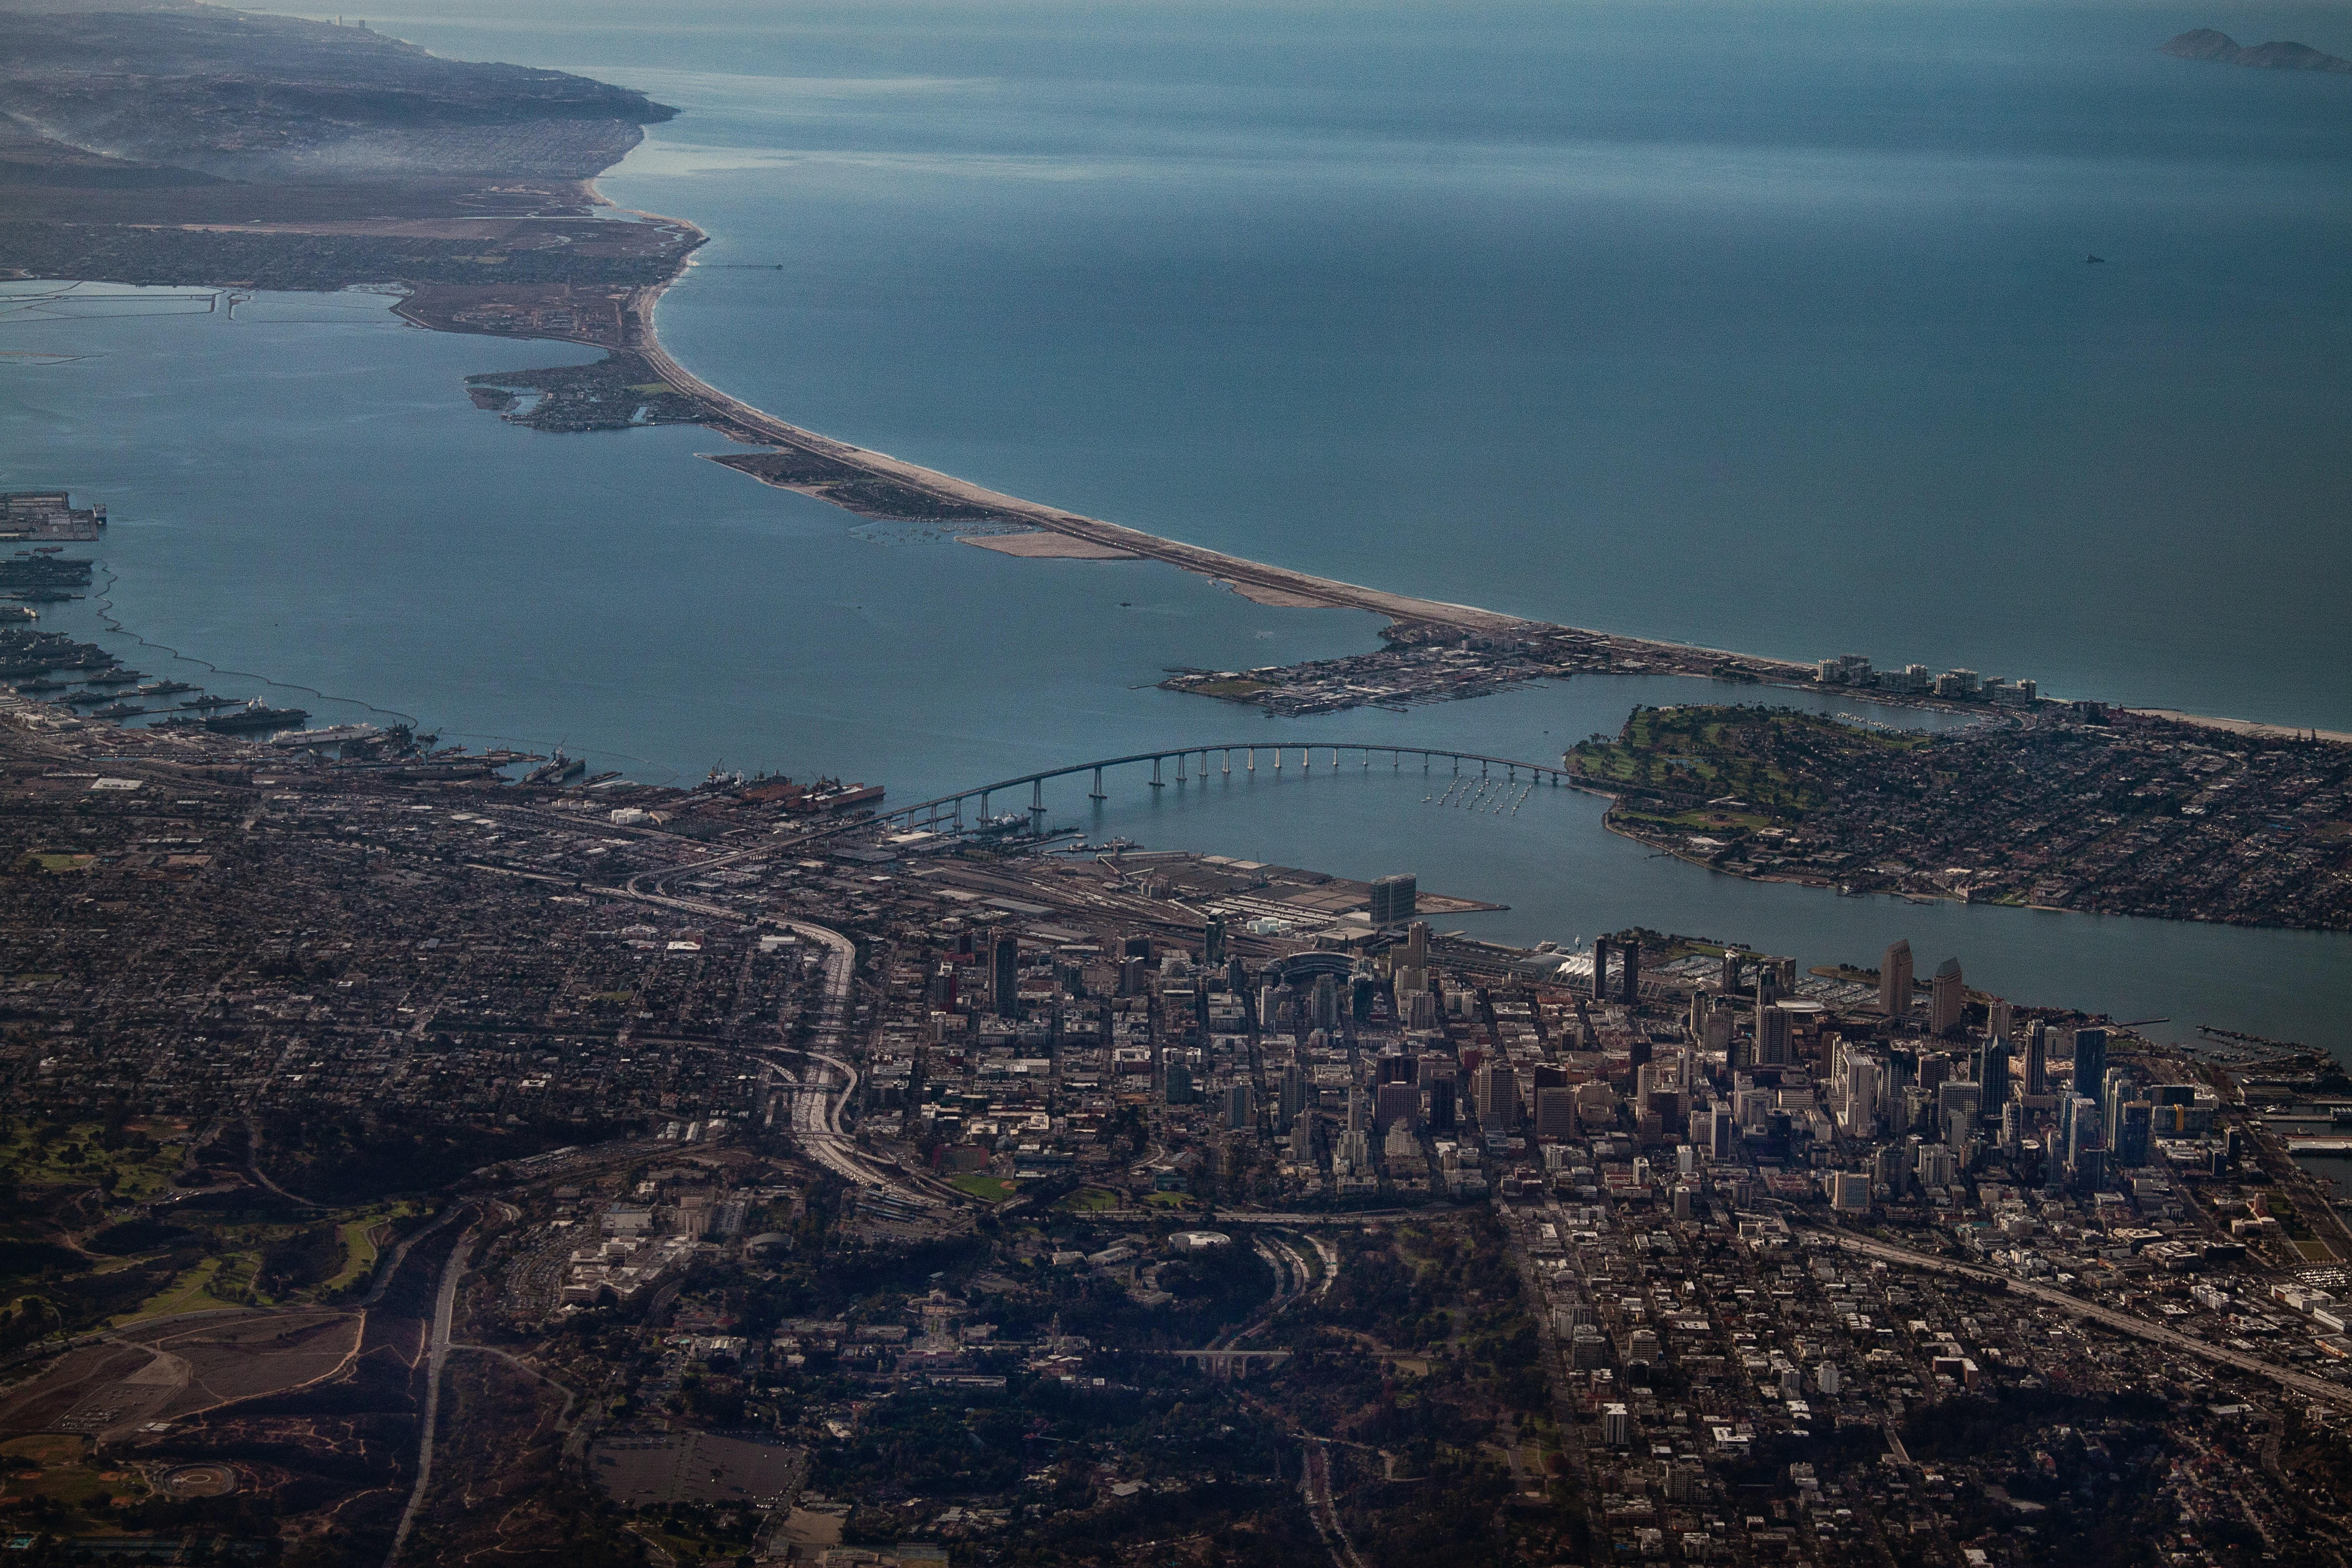 Aerial photography of downtown San Diego including the Coronado bridge